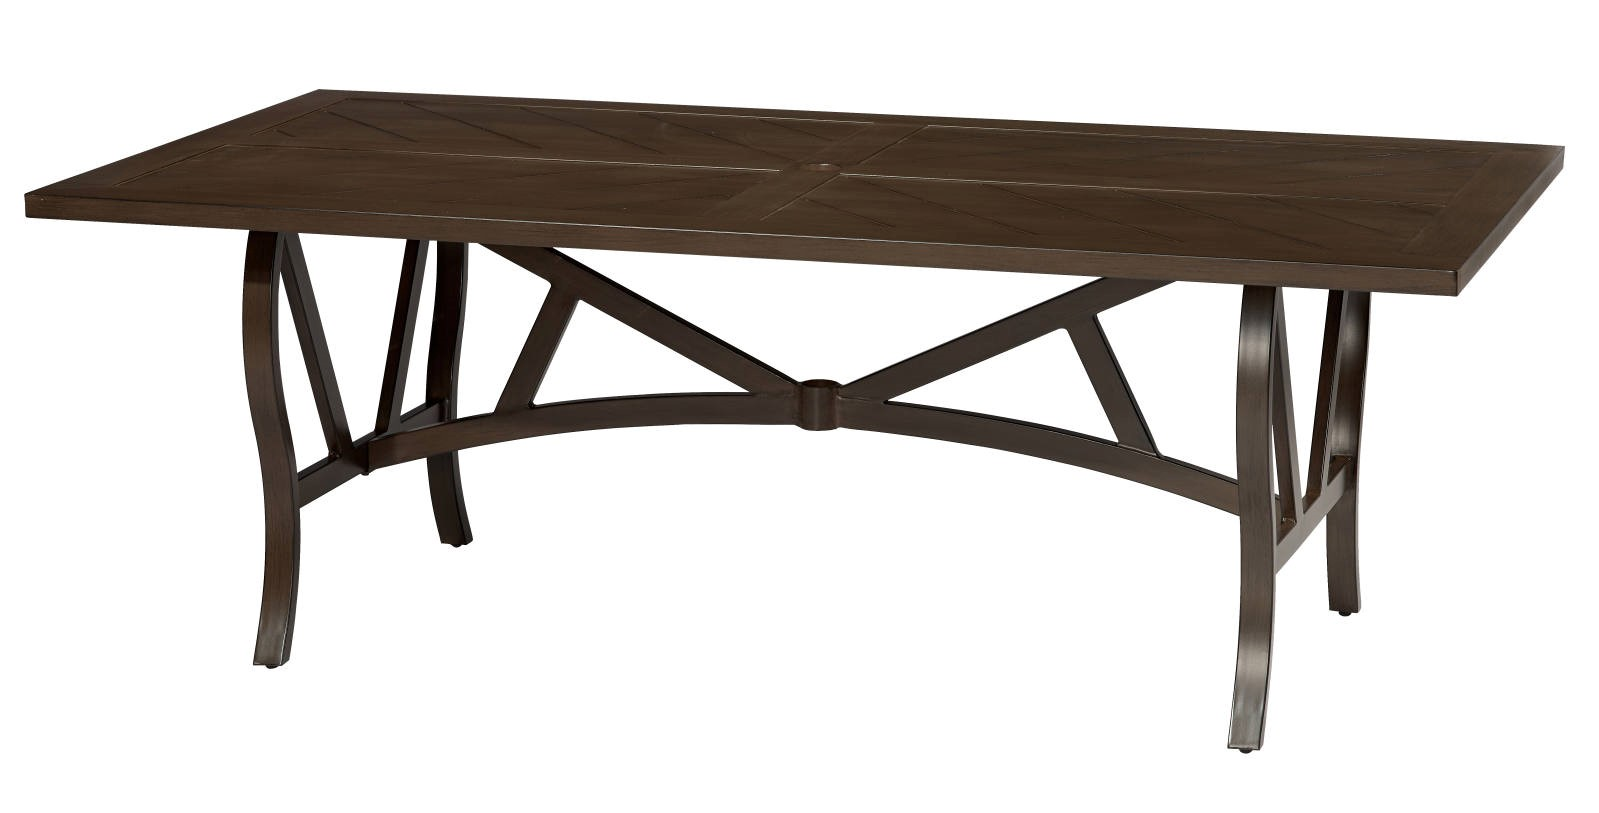 Trenton Slat Dining Table